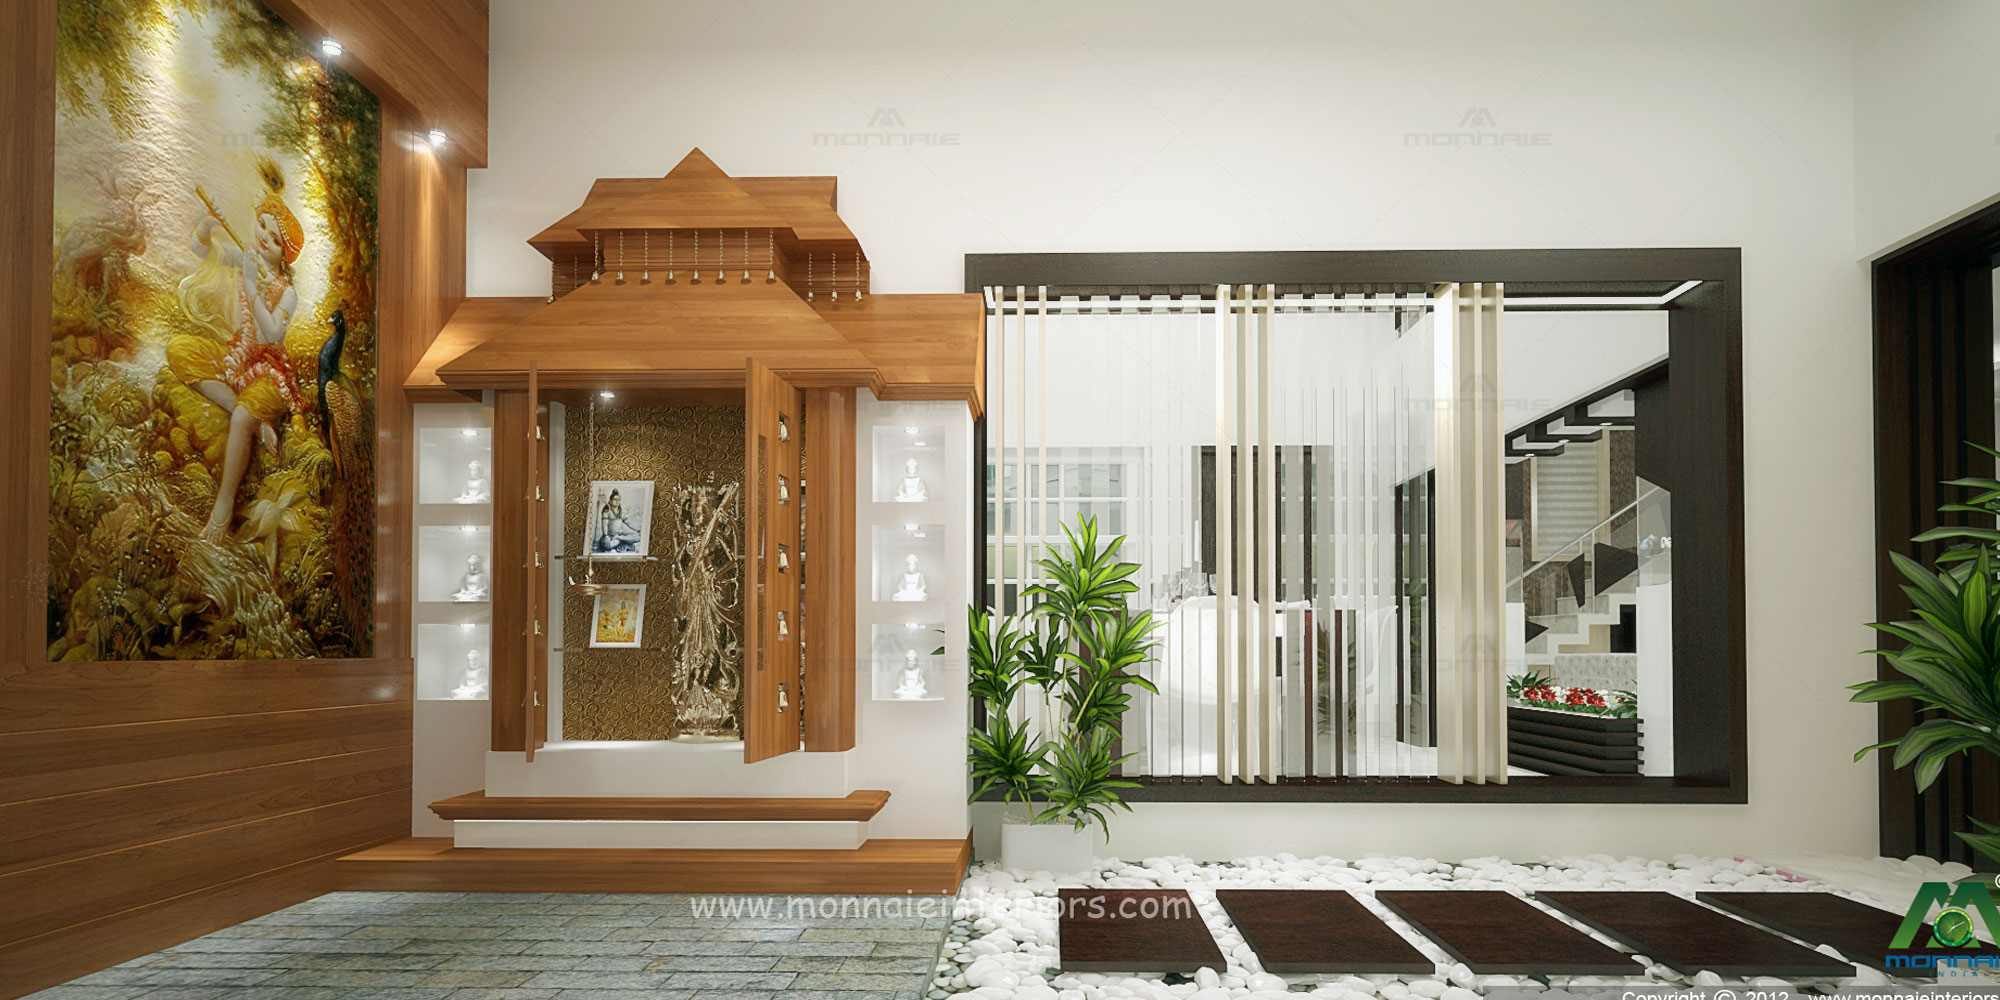 Pooja Room Interior In Kochi Kerala Monnaie Architects Interiors